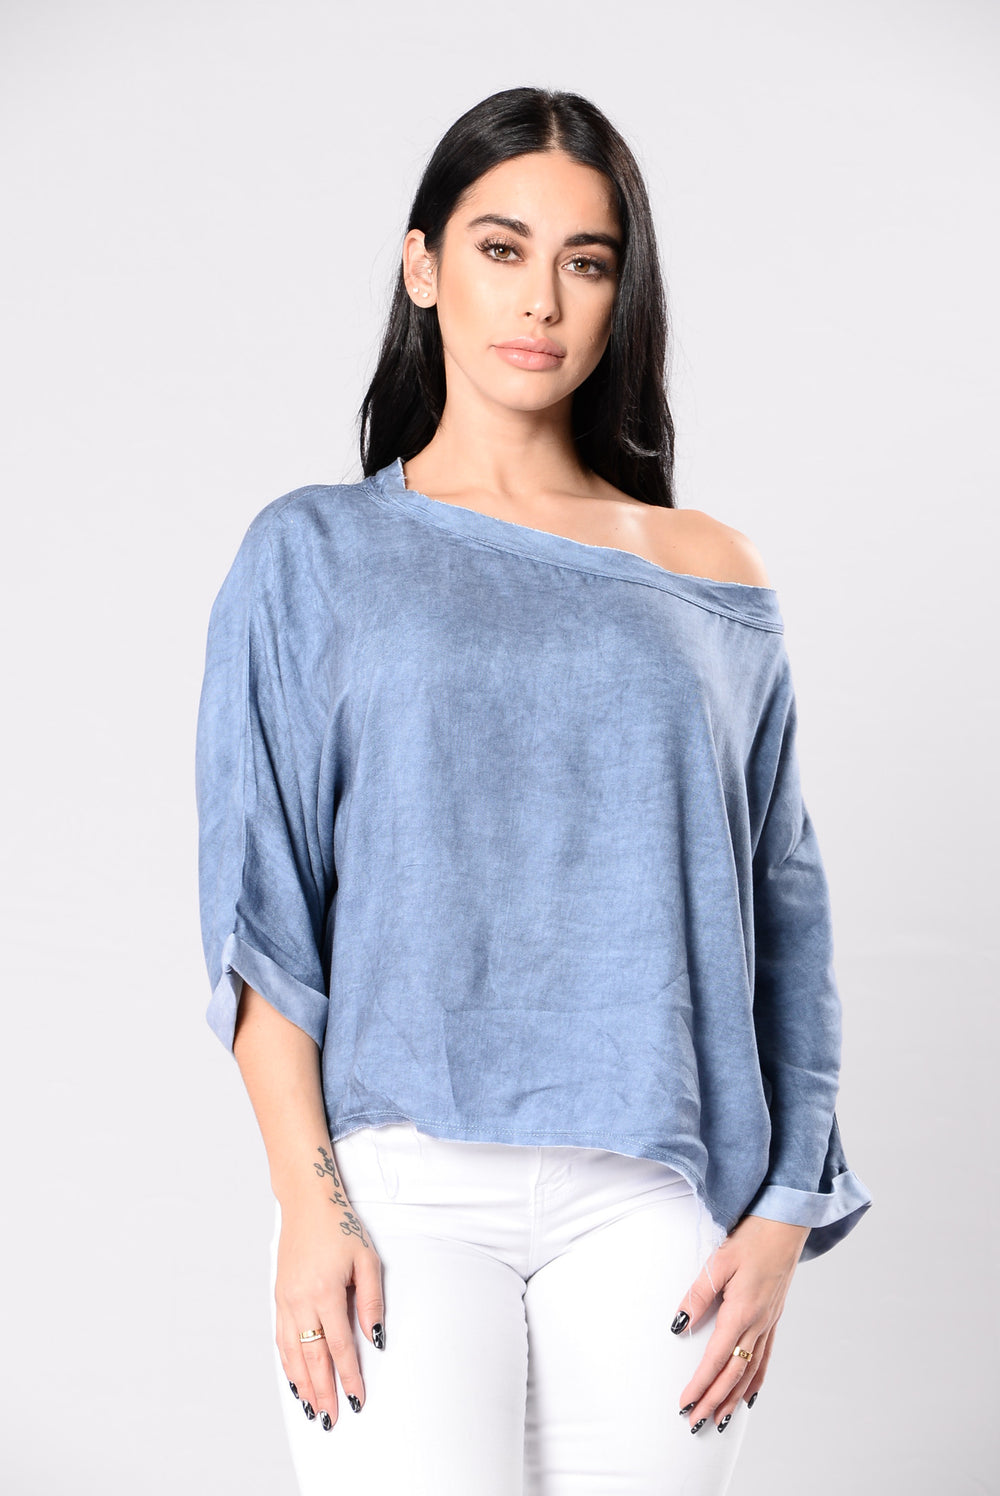 On Edge Top - Denim Blue